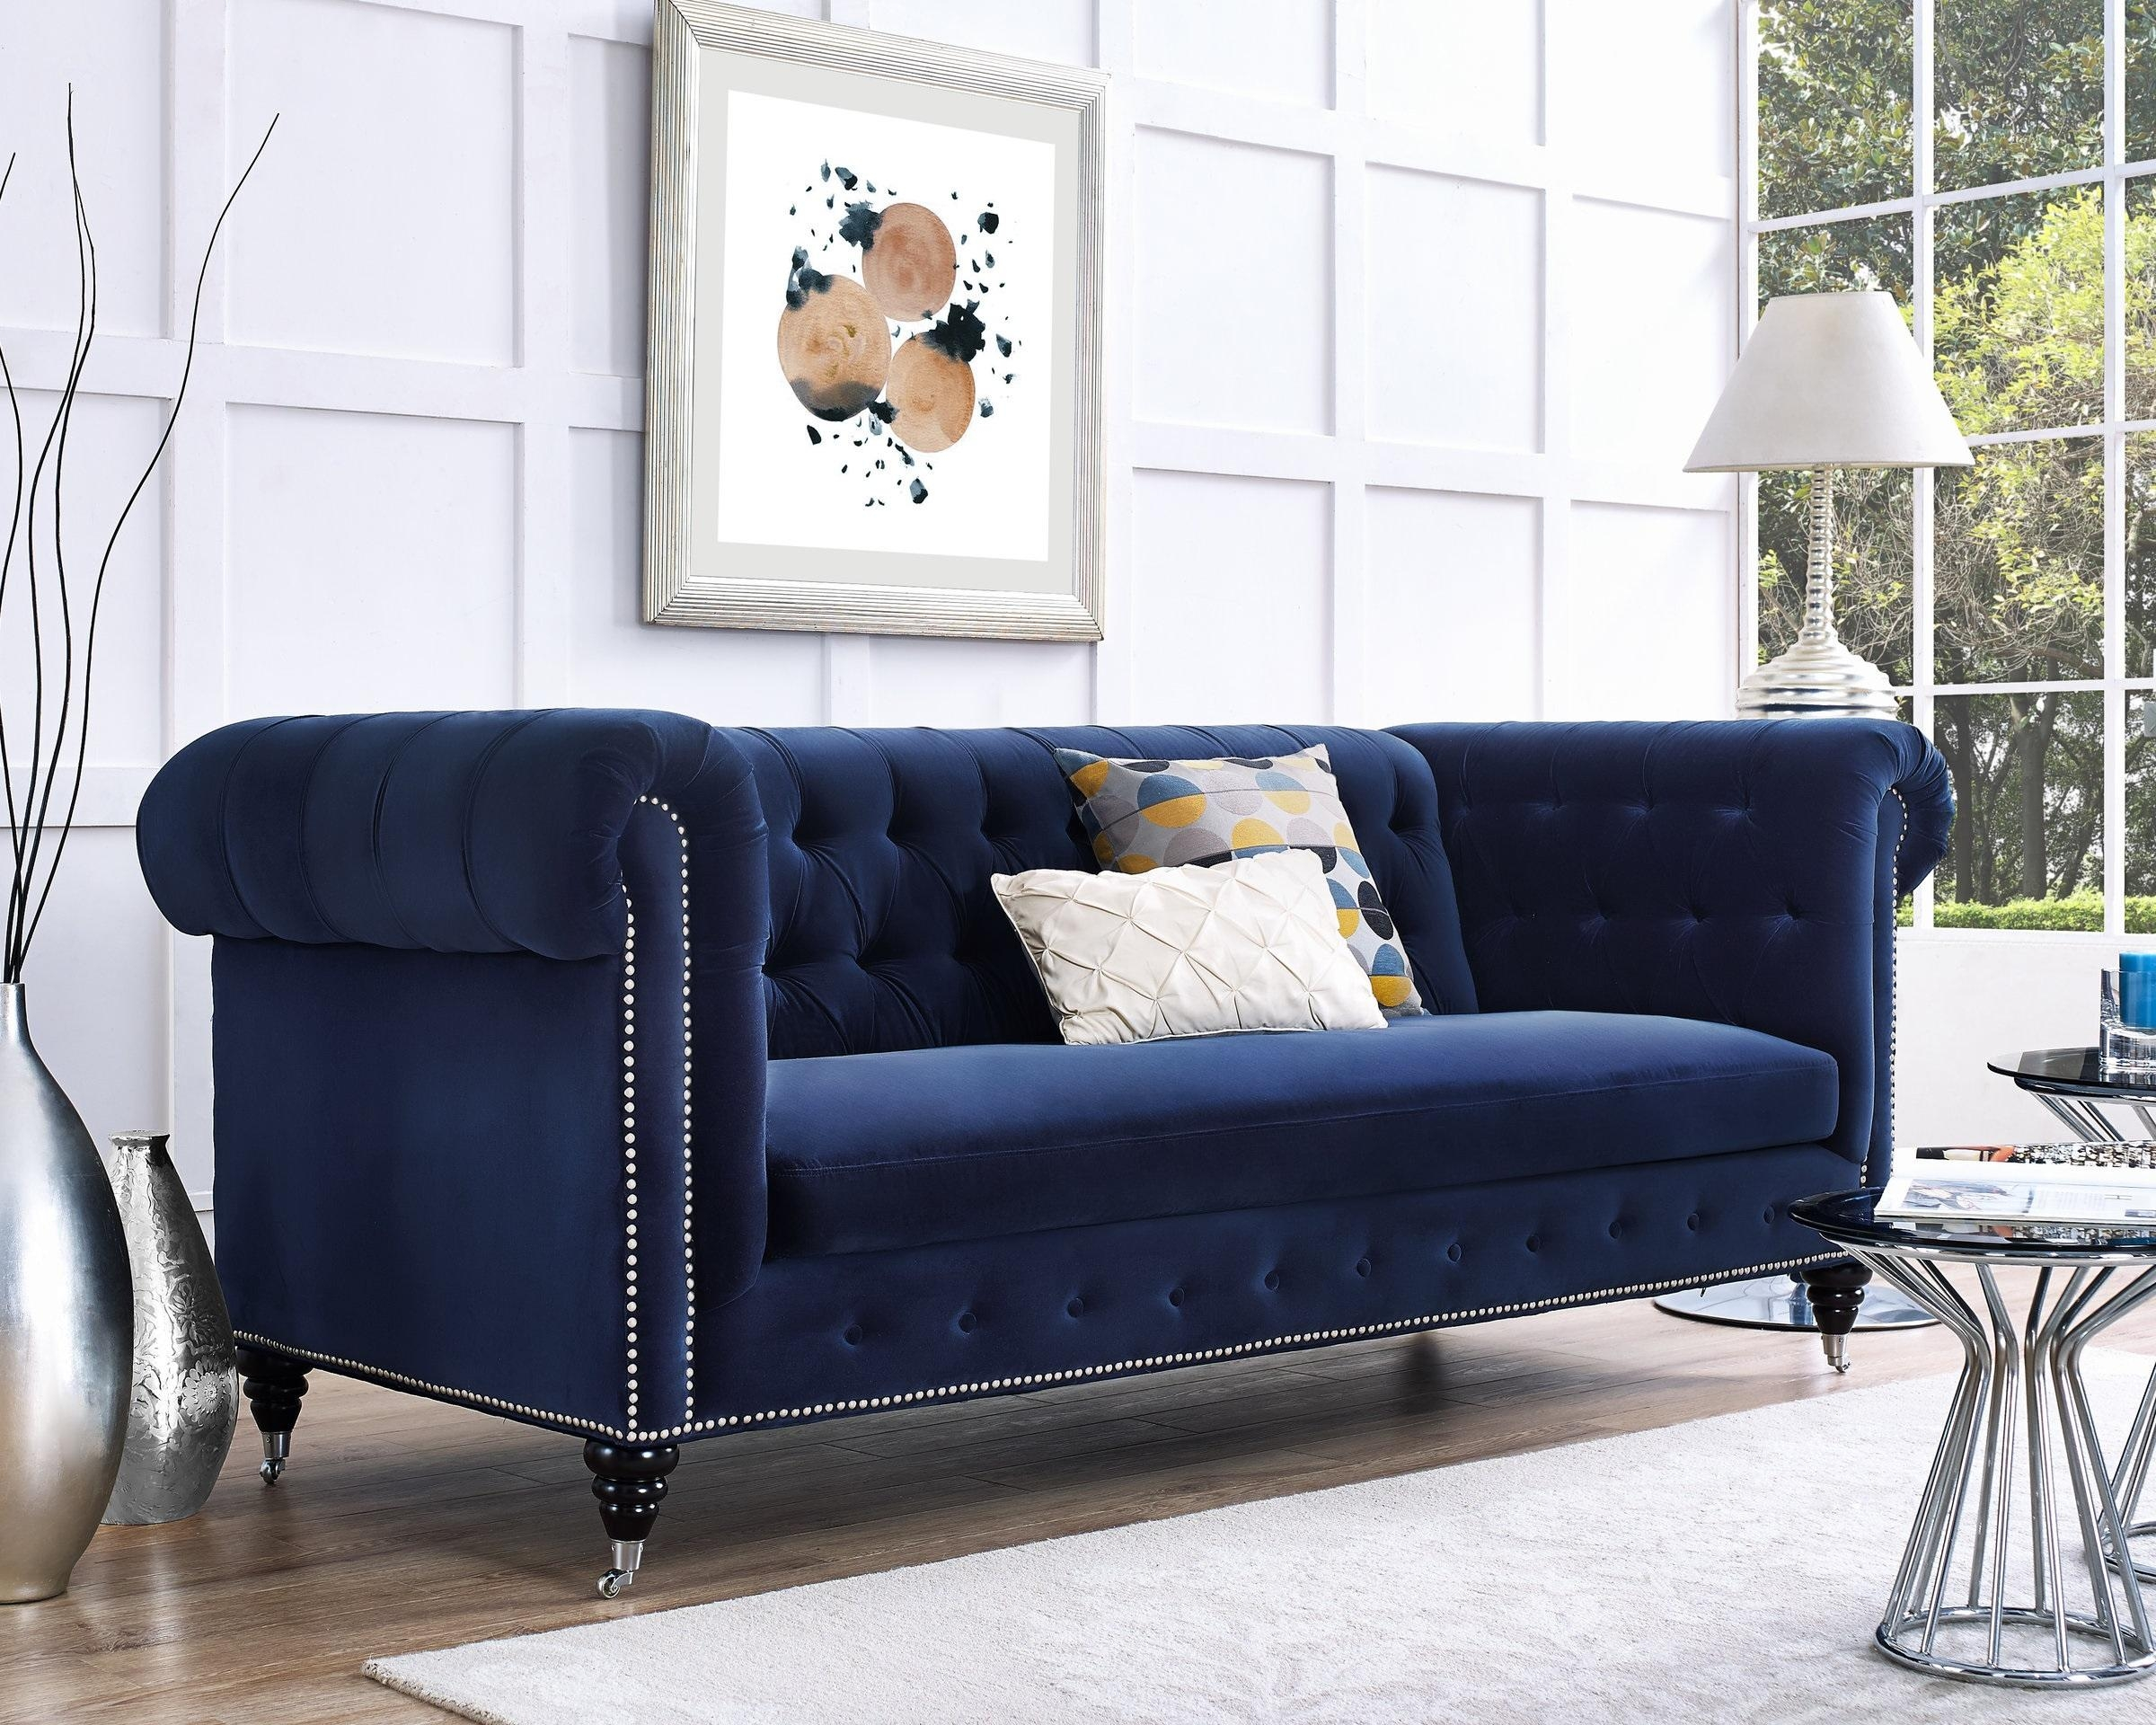 Dark Blue Velvet Chesterfield Tufted Sofa Regarding Blue Velvet Tufted Sofas (Image 9 of 20)